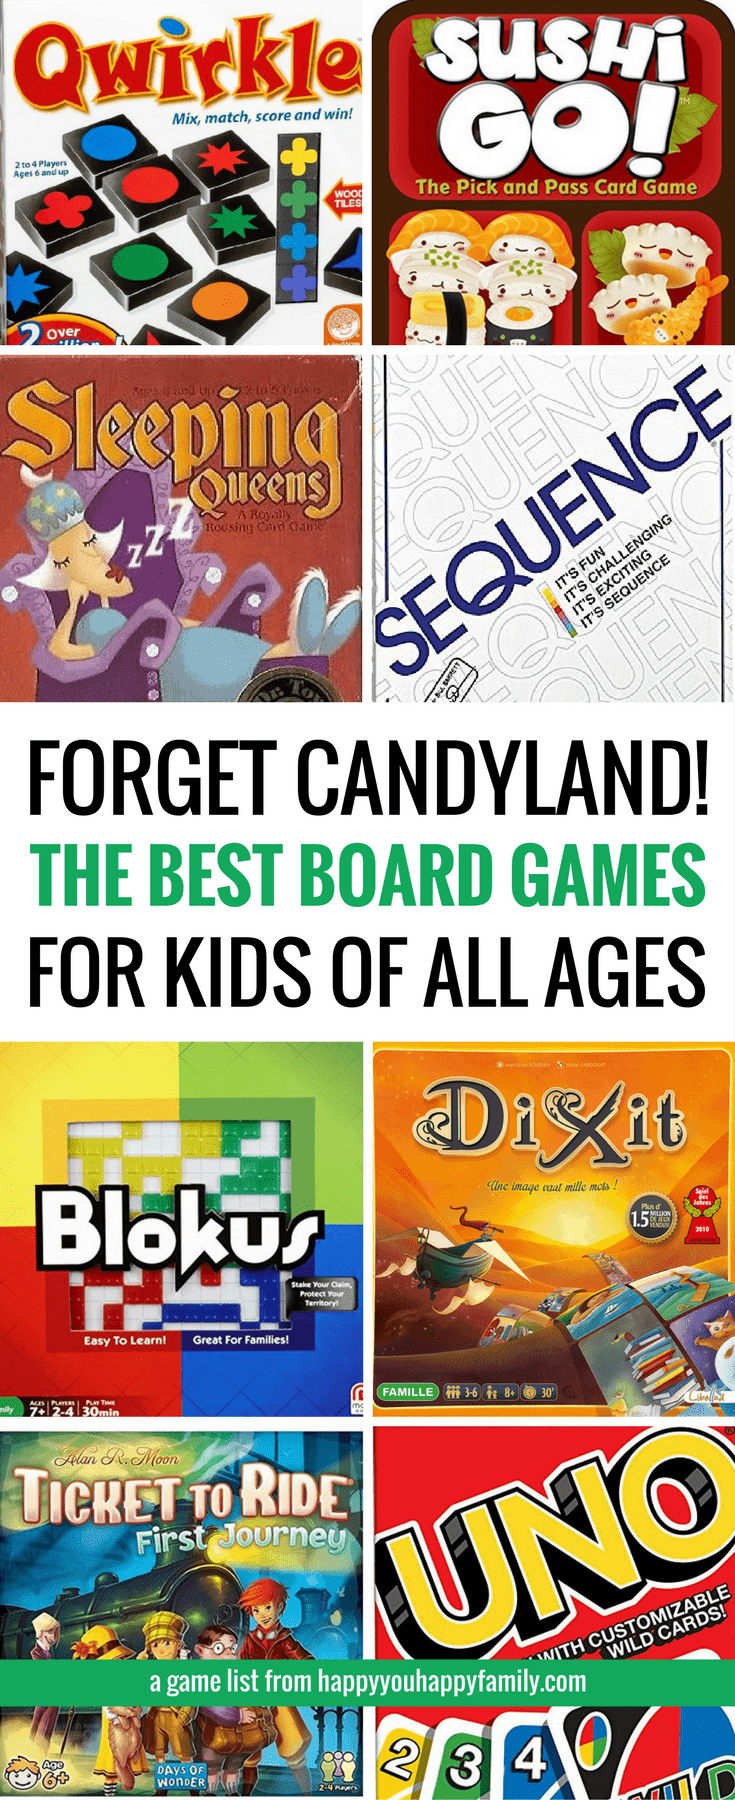 Candyland! Here are the best board games for kids